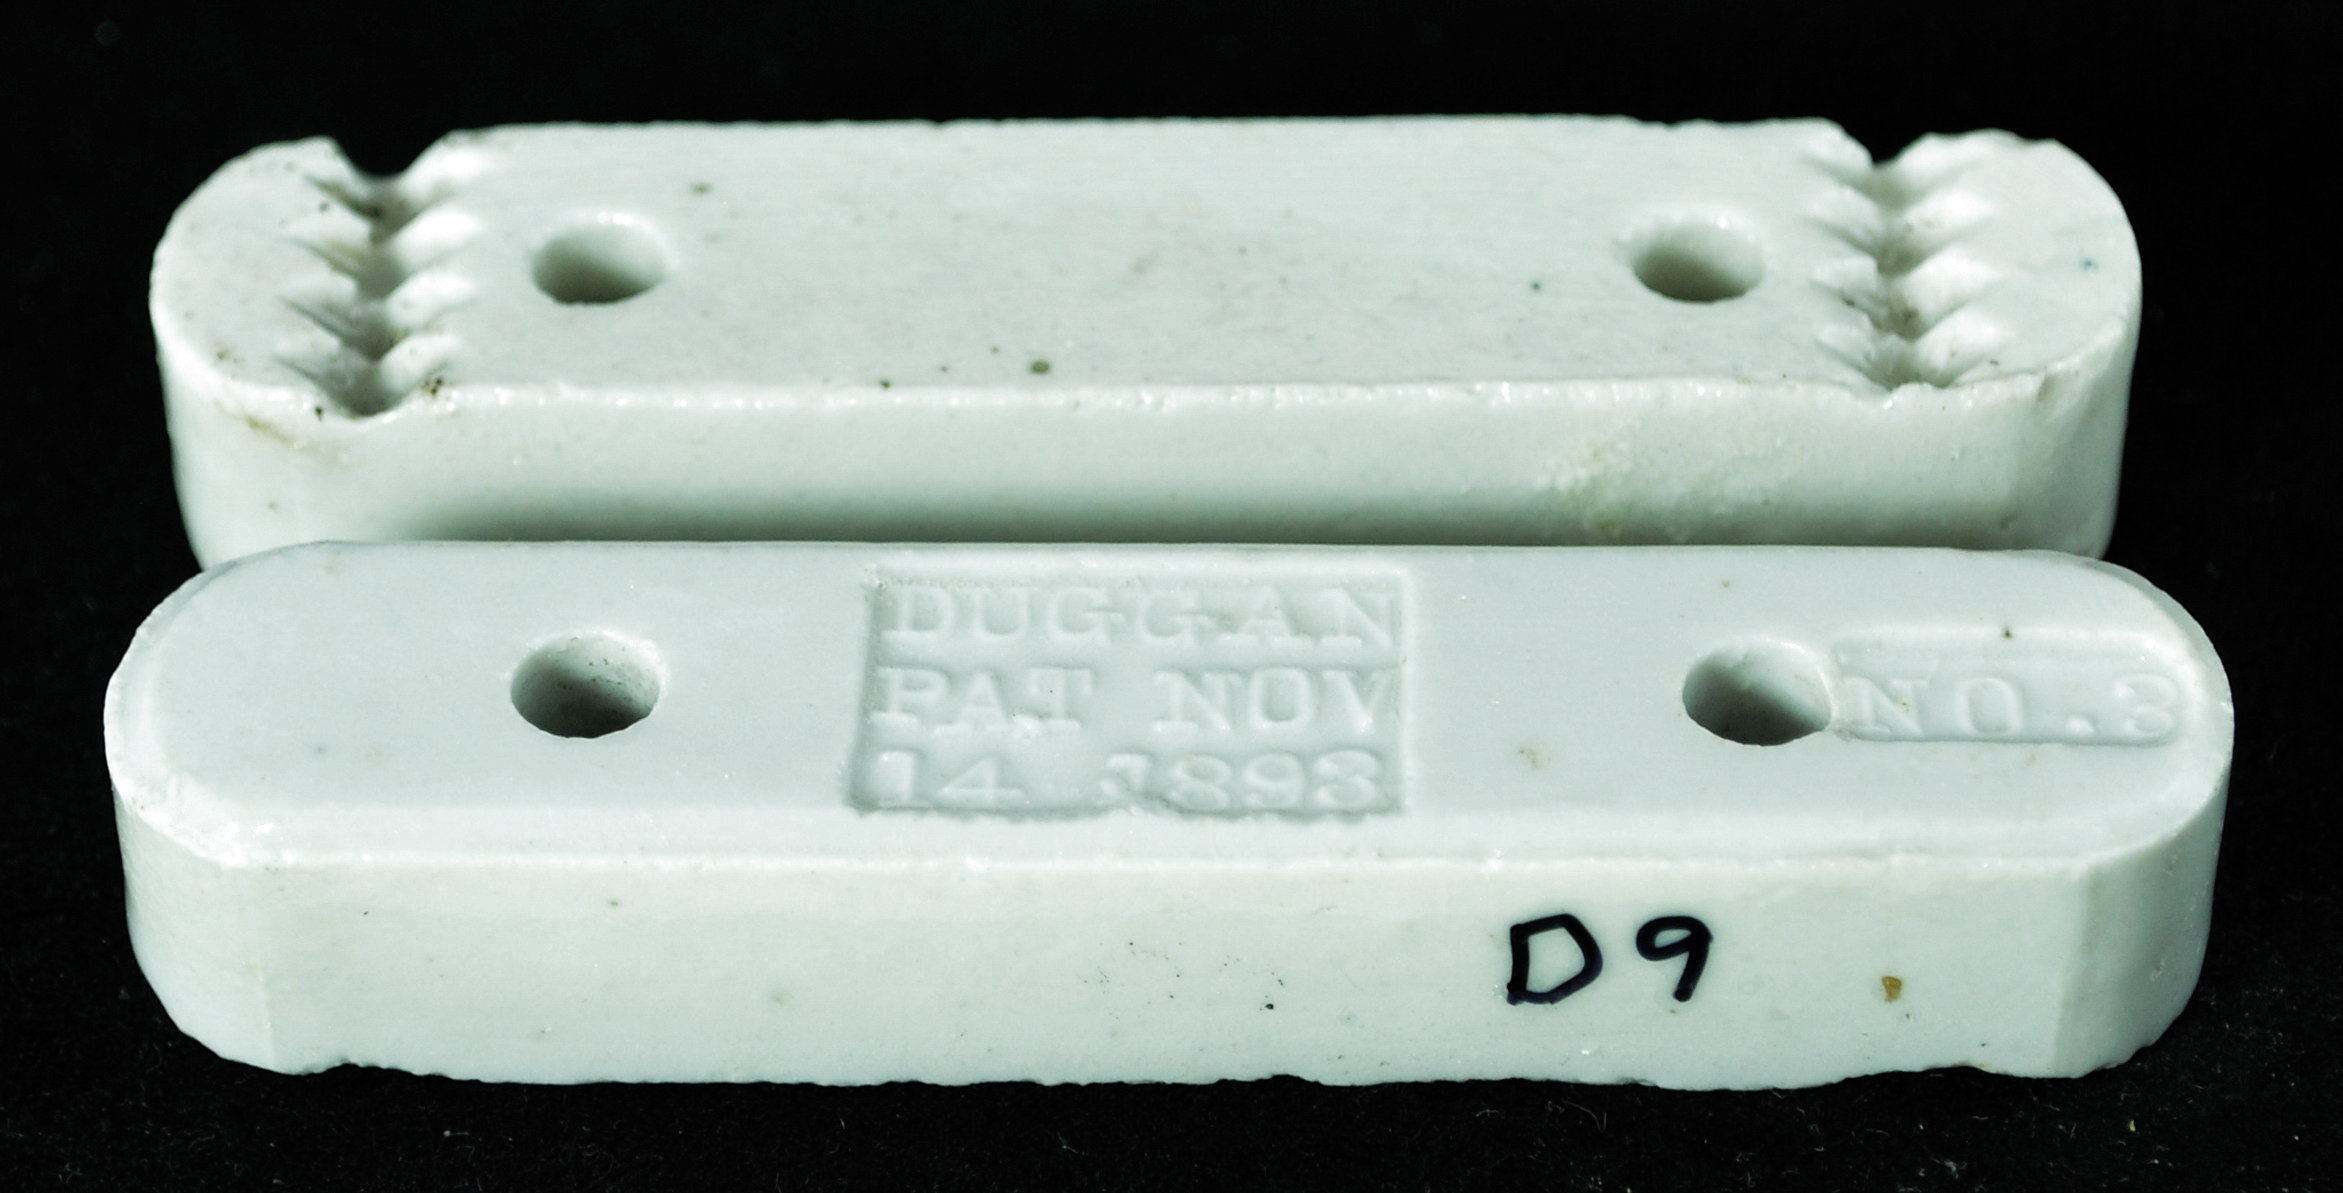 Porcelain Cleats for House Wiring - History